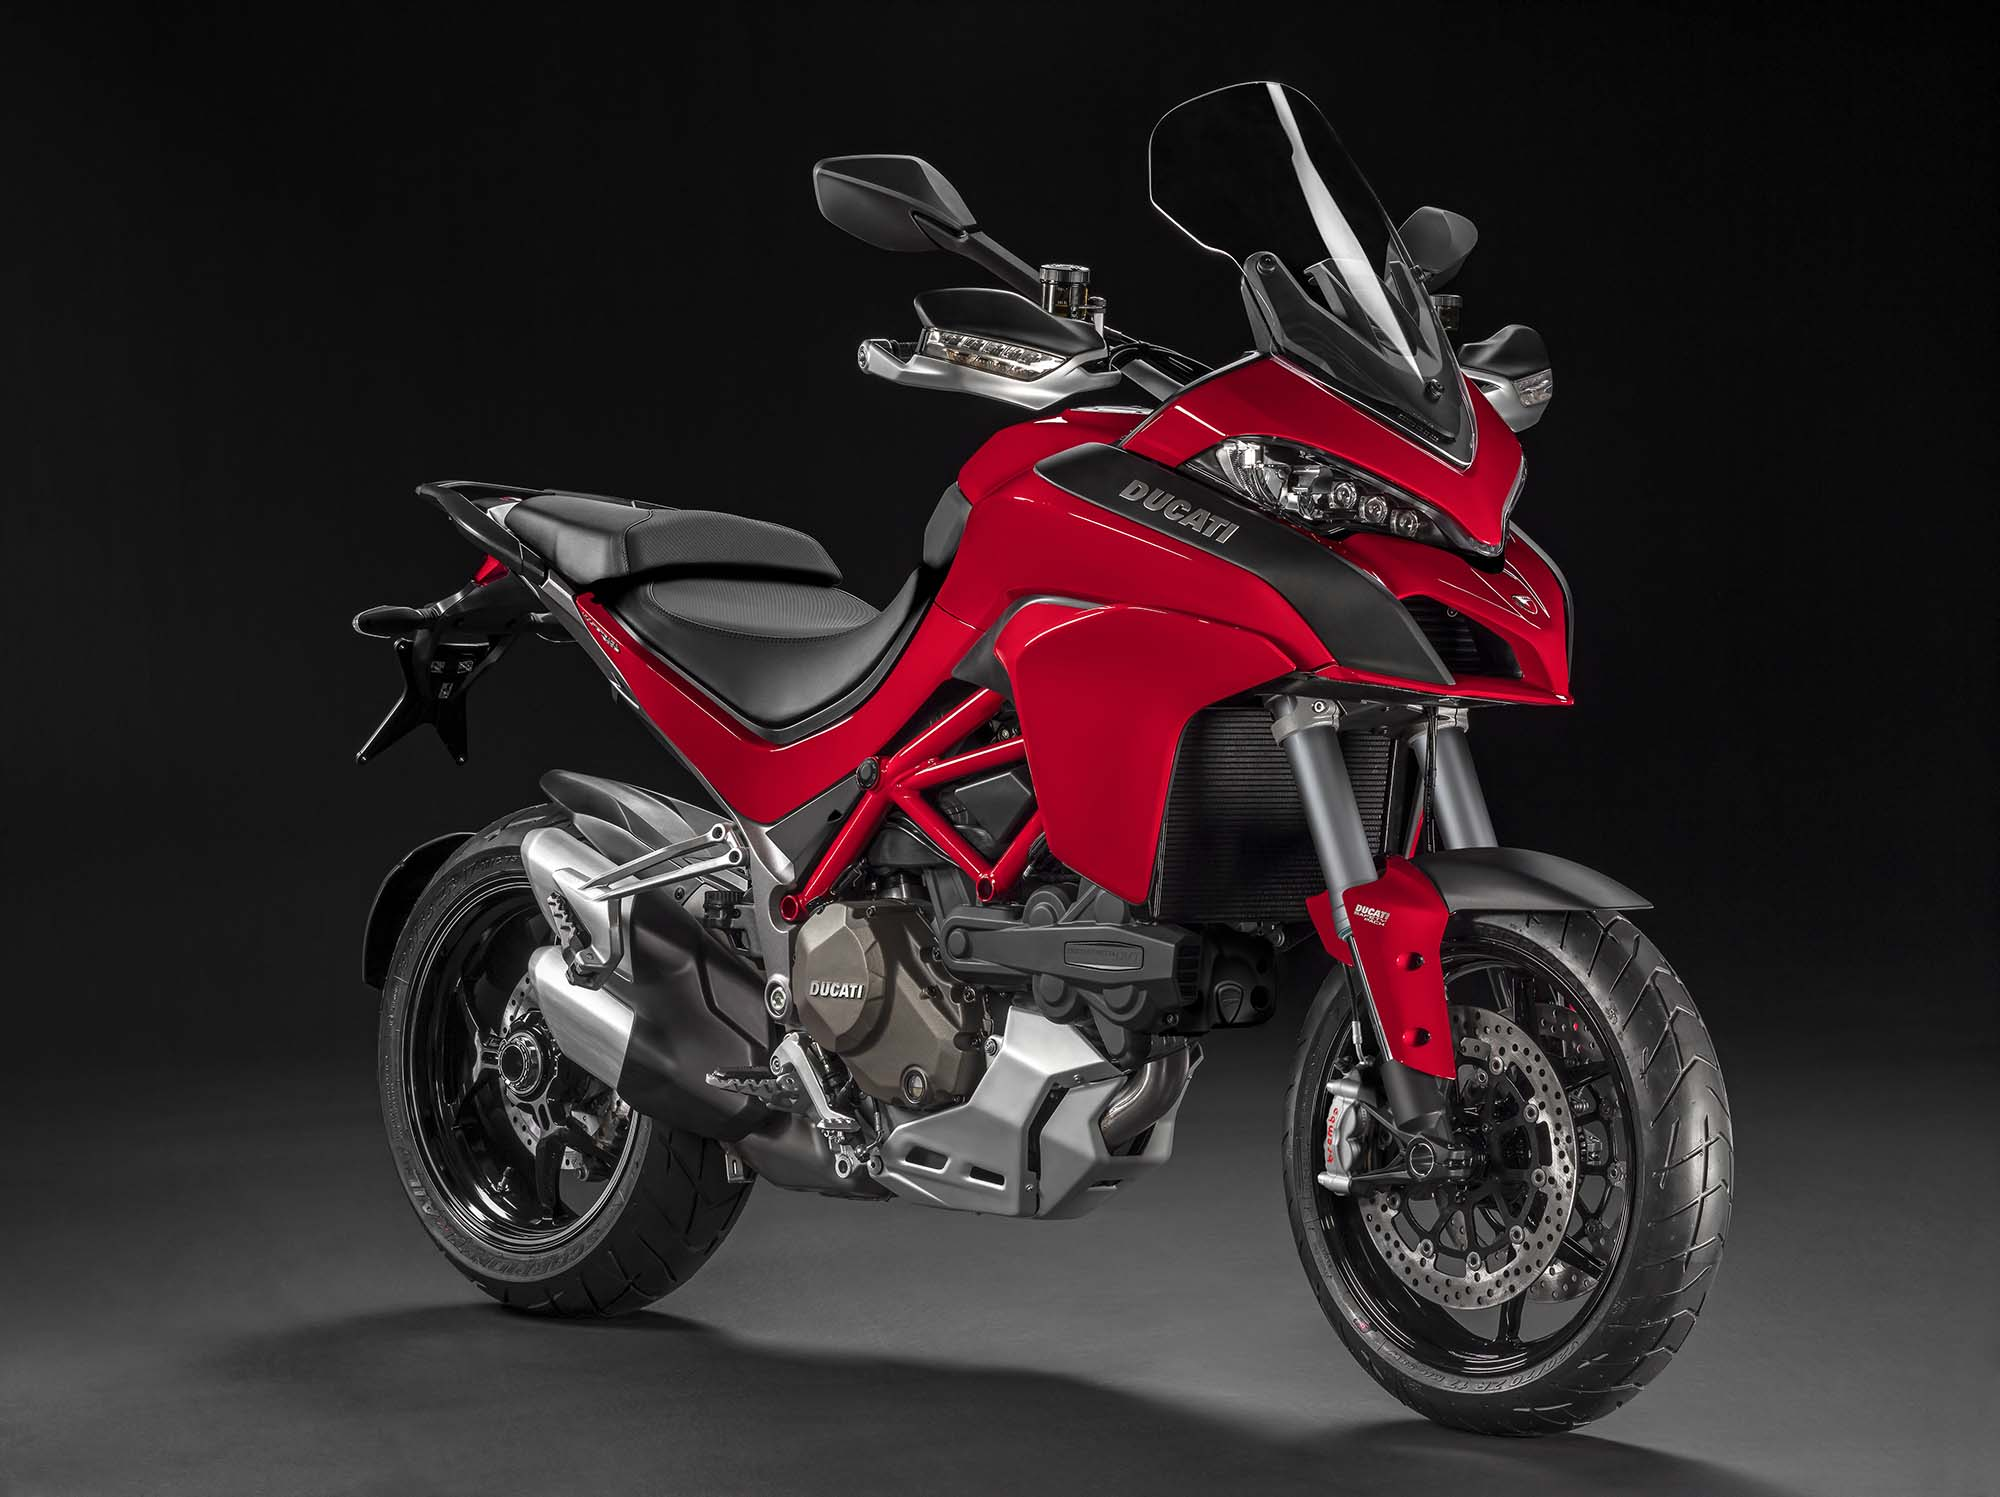 2015 ducati multistrada 1200 a new face in adv asphalt rubber. Black Bedroom Furniture Sets. Home Design Ideas